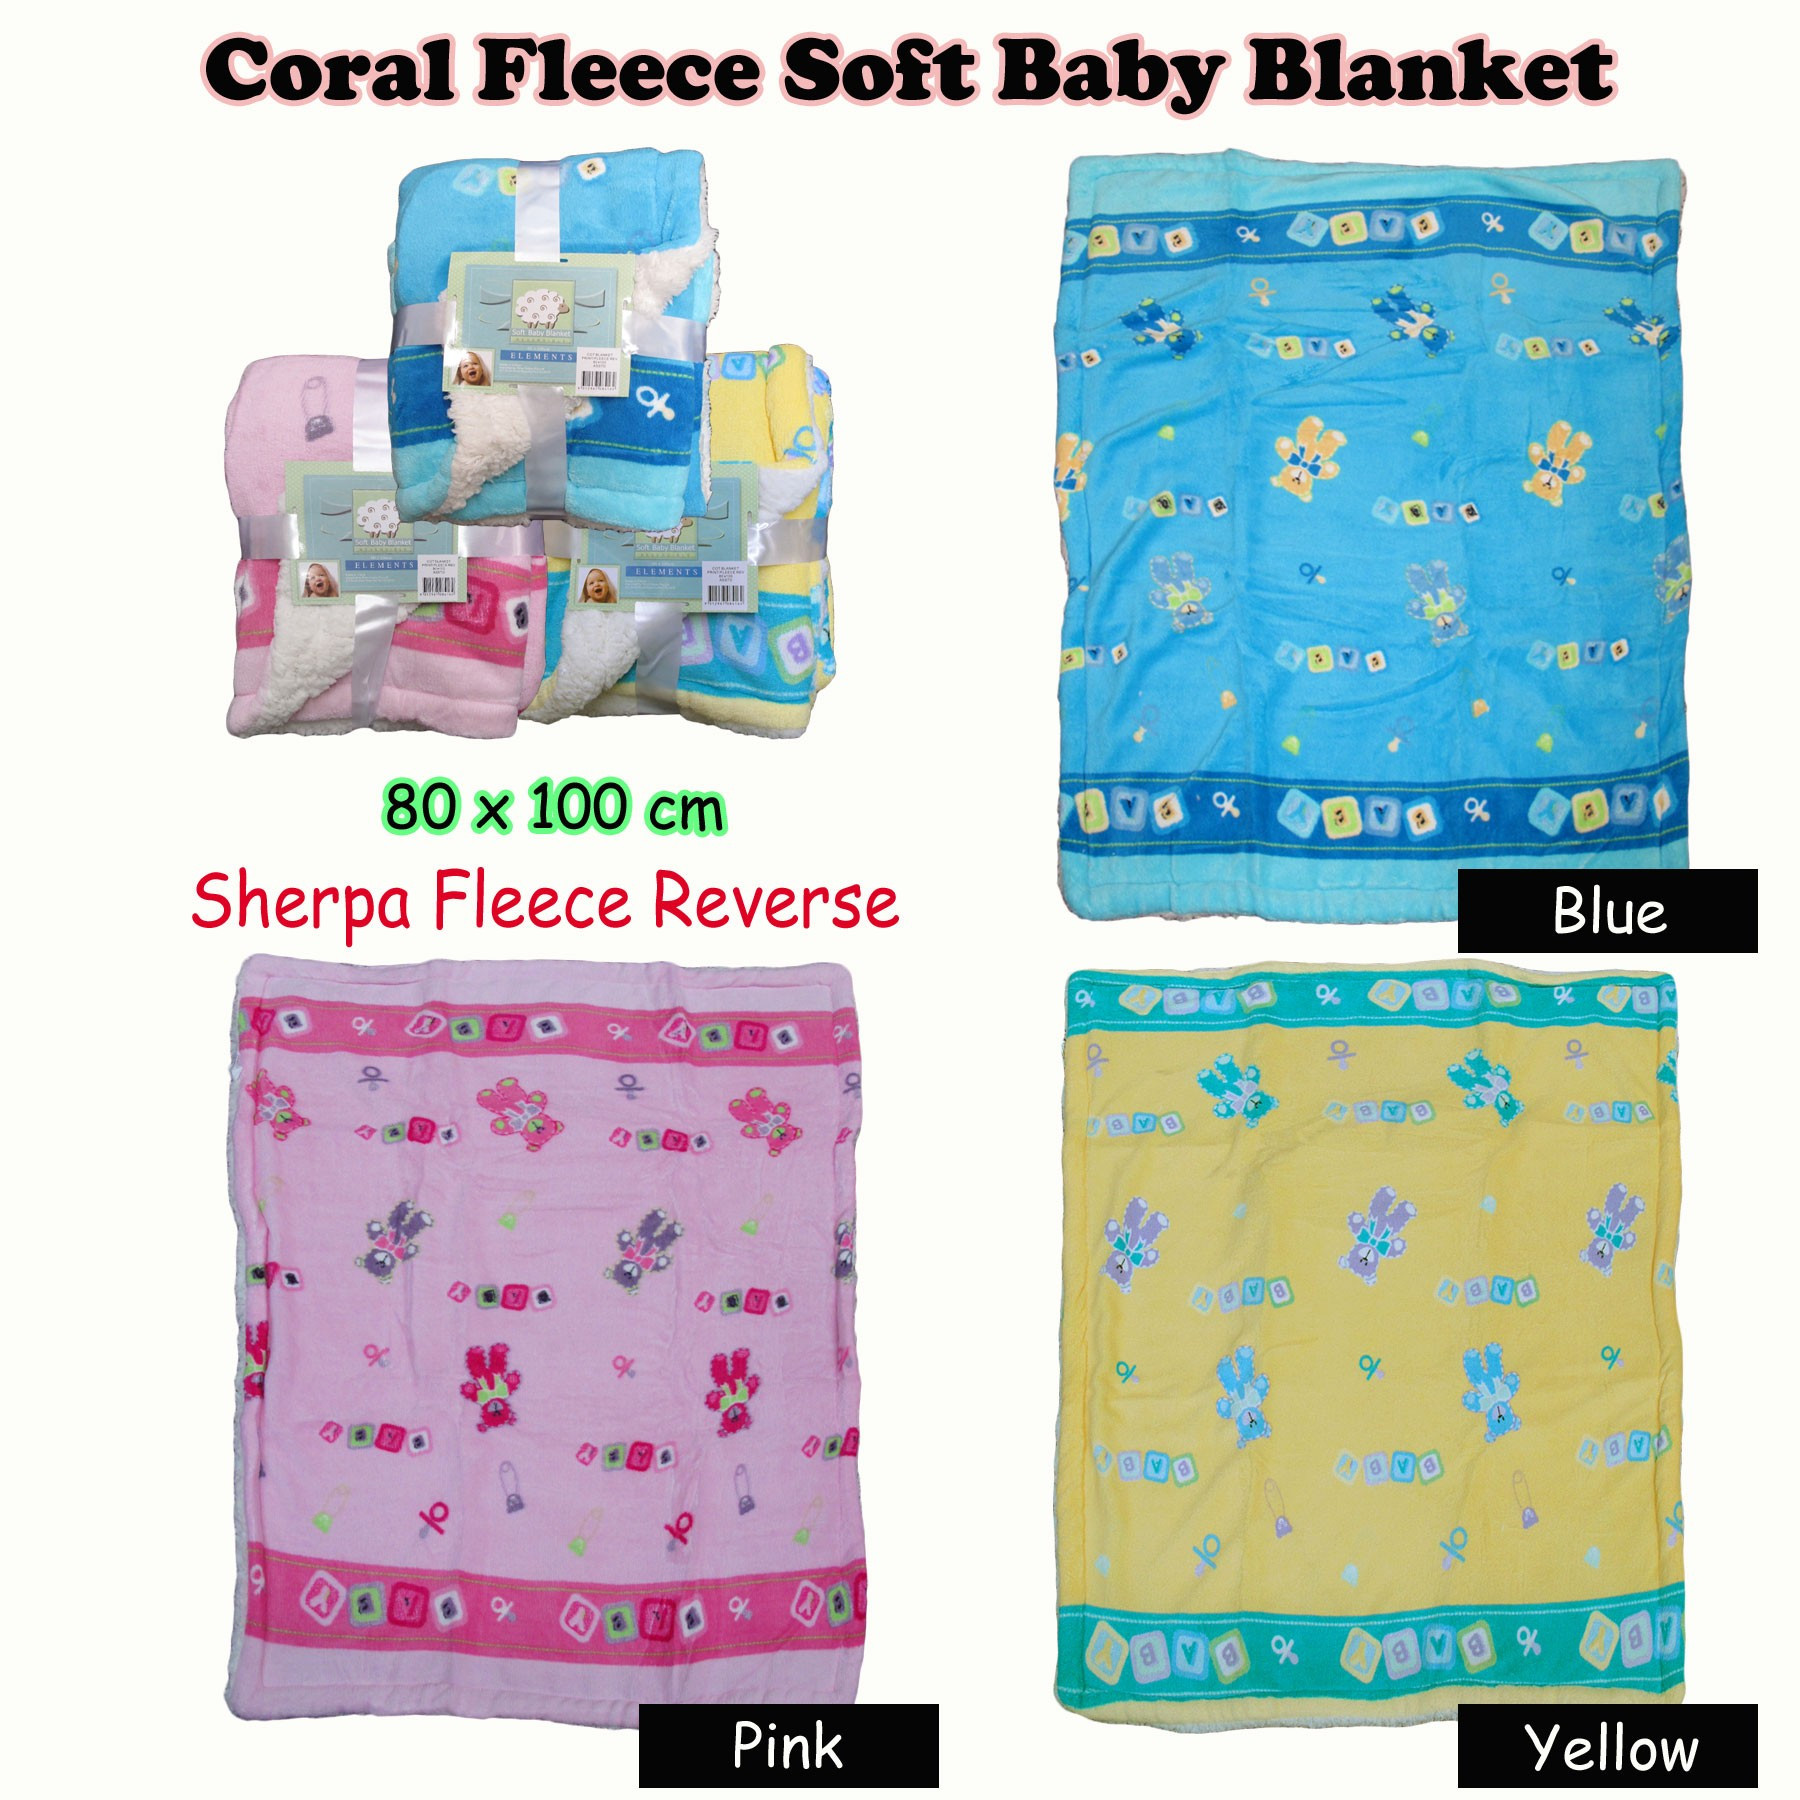 Baby Blanket Size Luxury soft Coral Fleece Baby Blanket 80 X 100 Cm Cot Size by Of Great 43 Ideas Baby Blanket Size